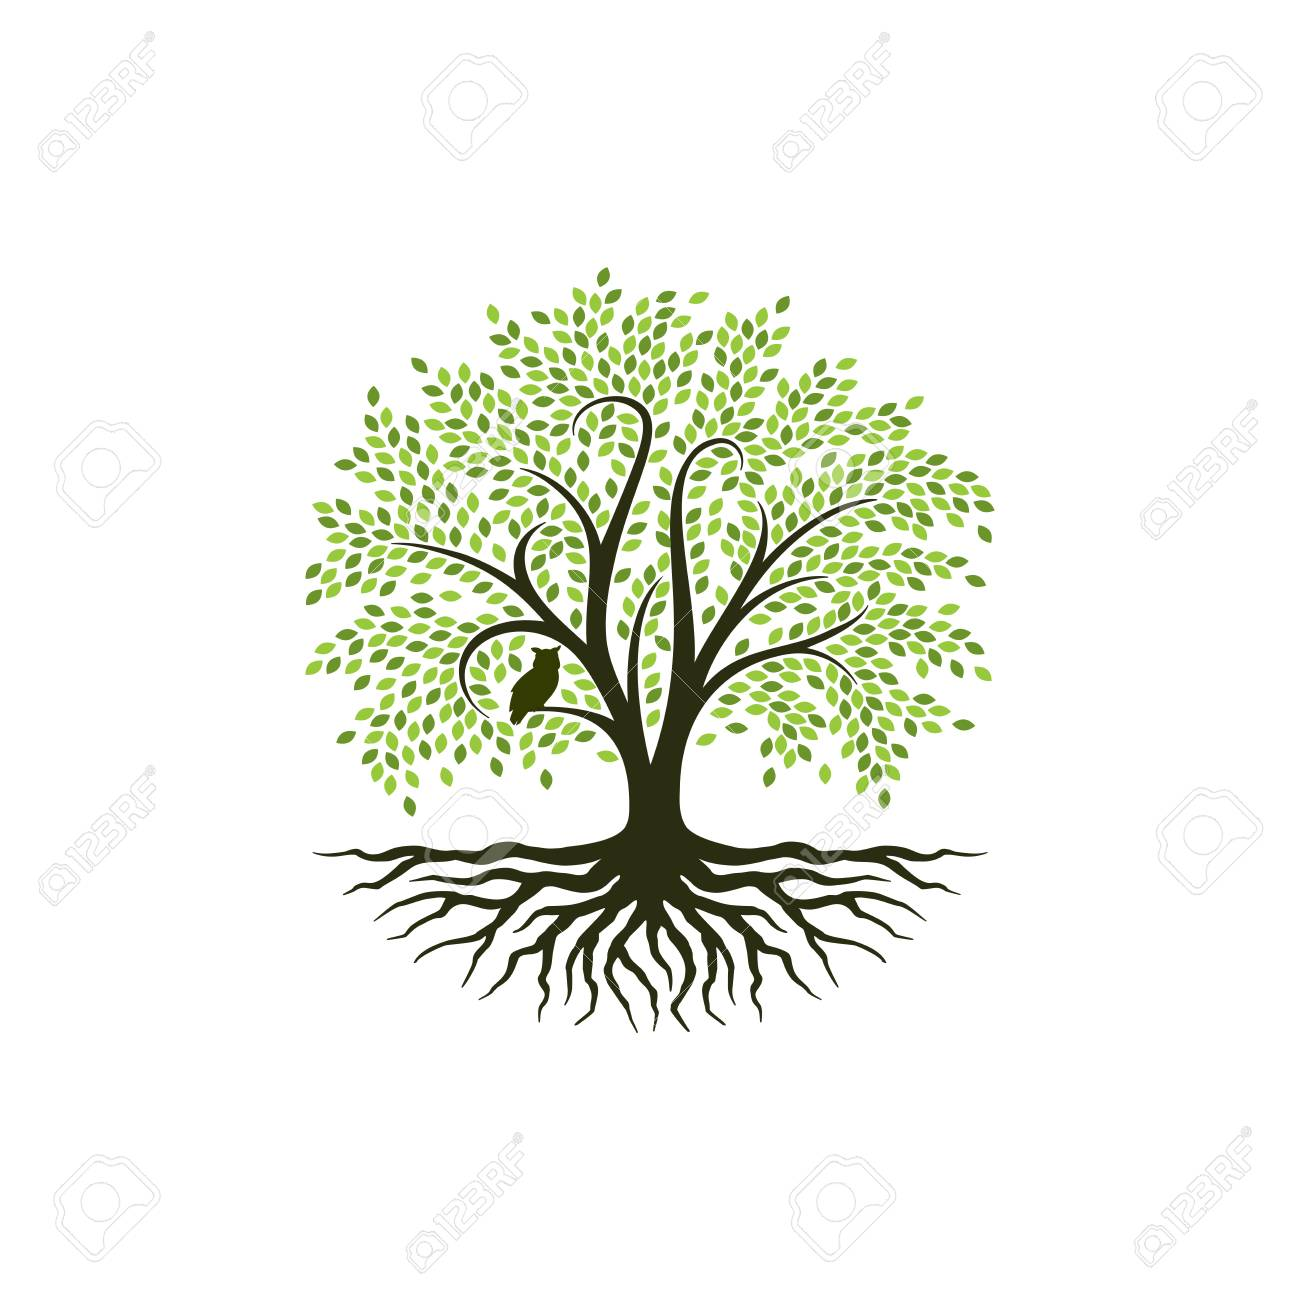 Abstract Vibrant Tree Logo Design Root Vector Tree Of Life